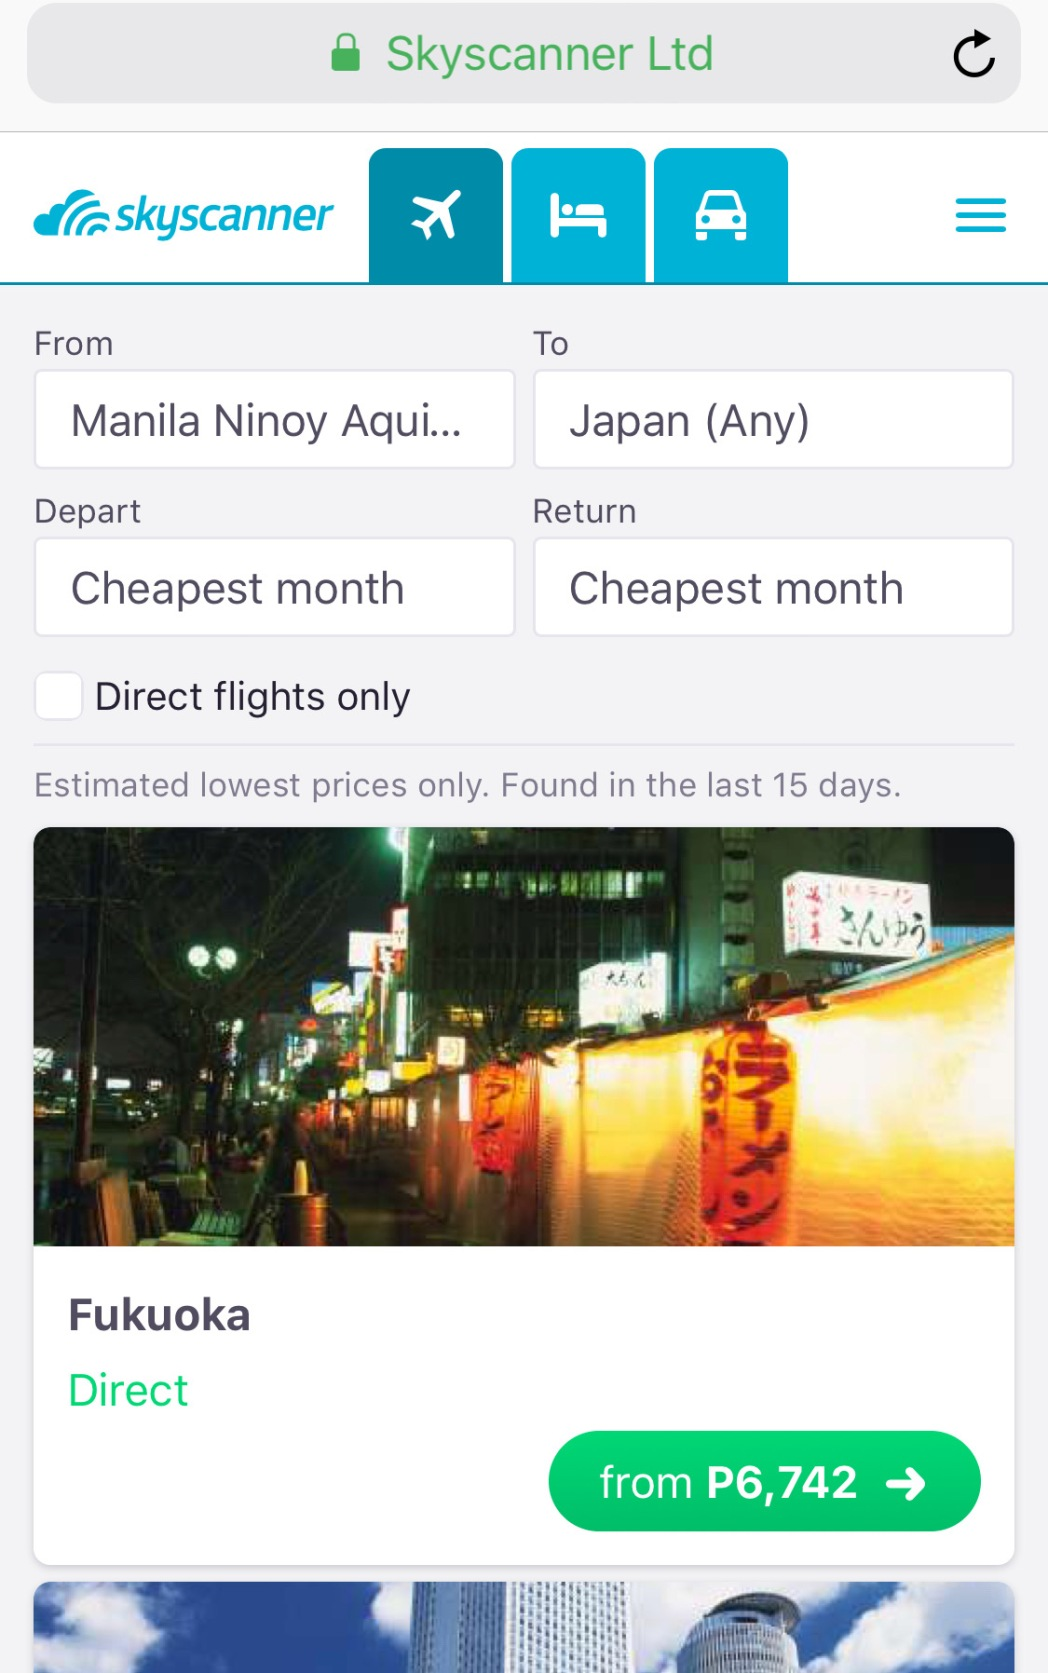 A list of affordable flights to the United States